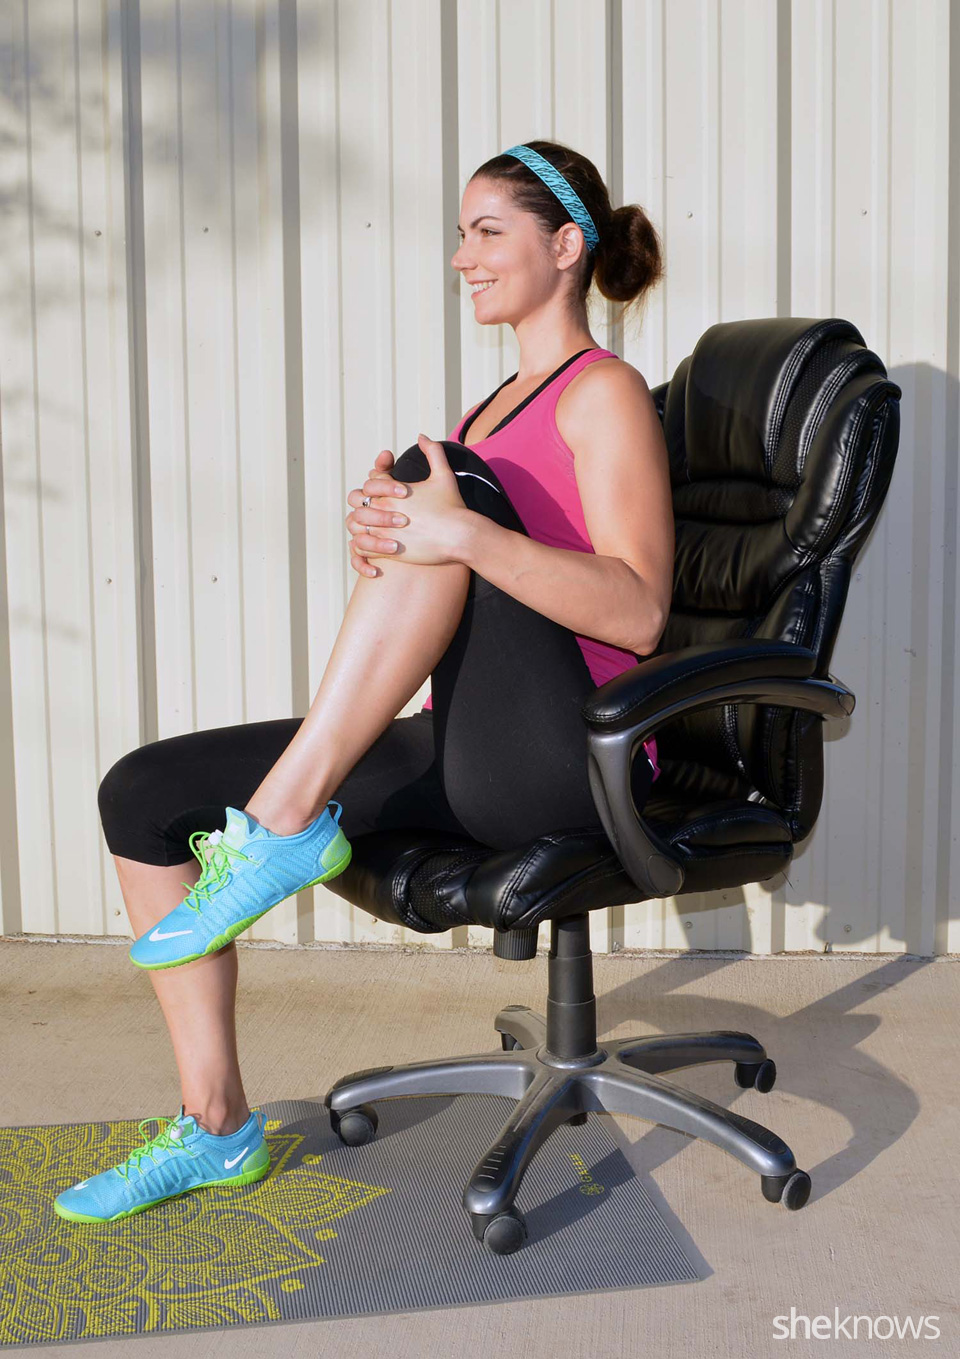 Seated Knee Raise   Raise your left knee to chest and hold for 10 seconds. Place foot back on the ground and continue with the right knee and hold for 10 seconds. Continue for 4 sets each leg.